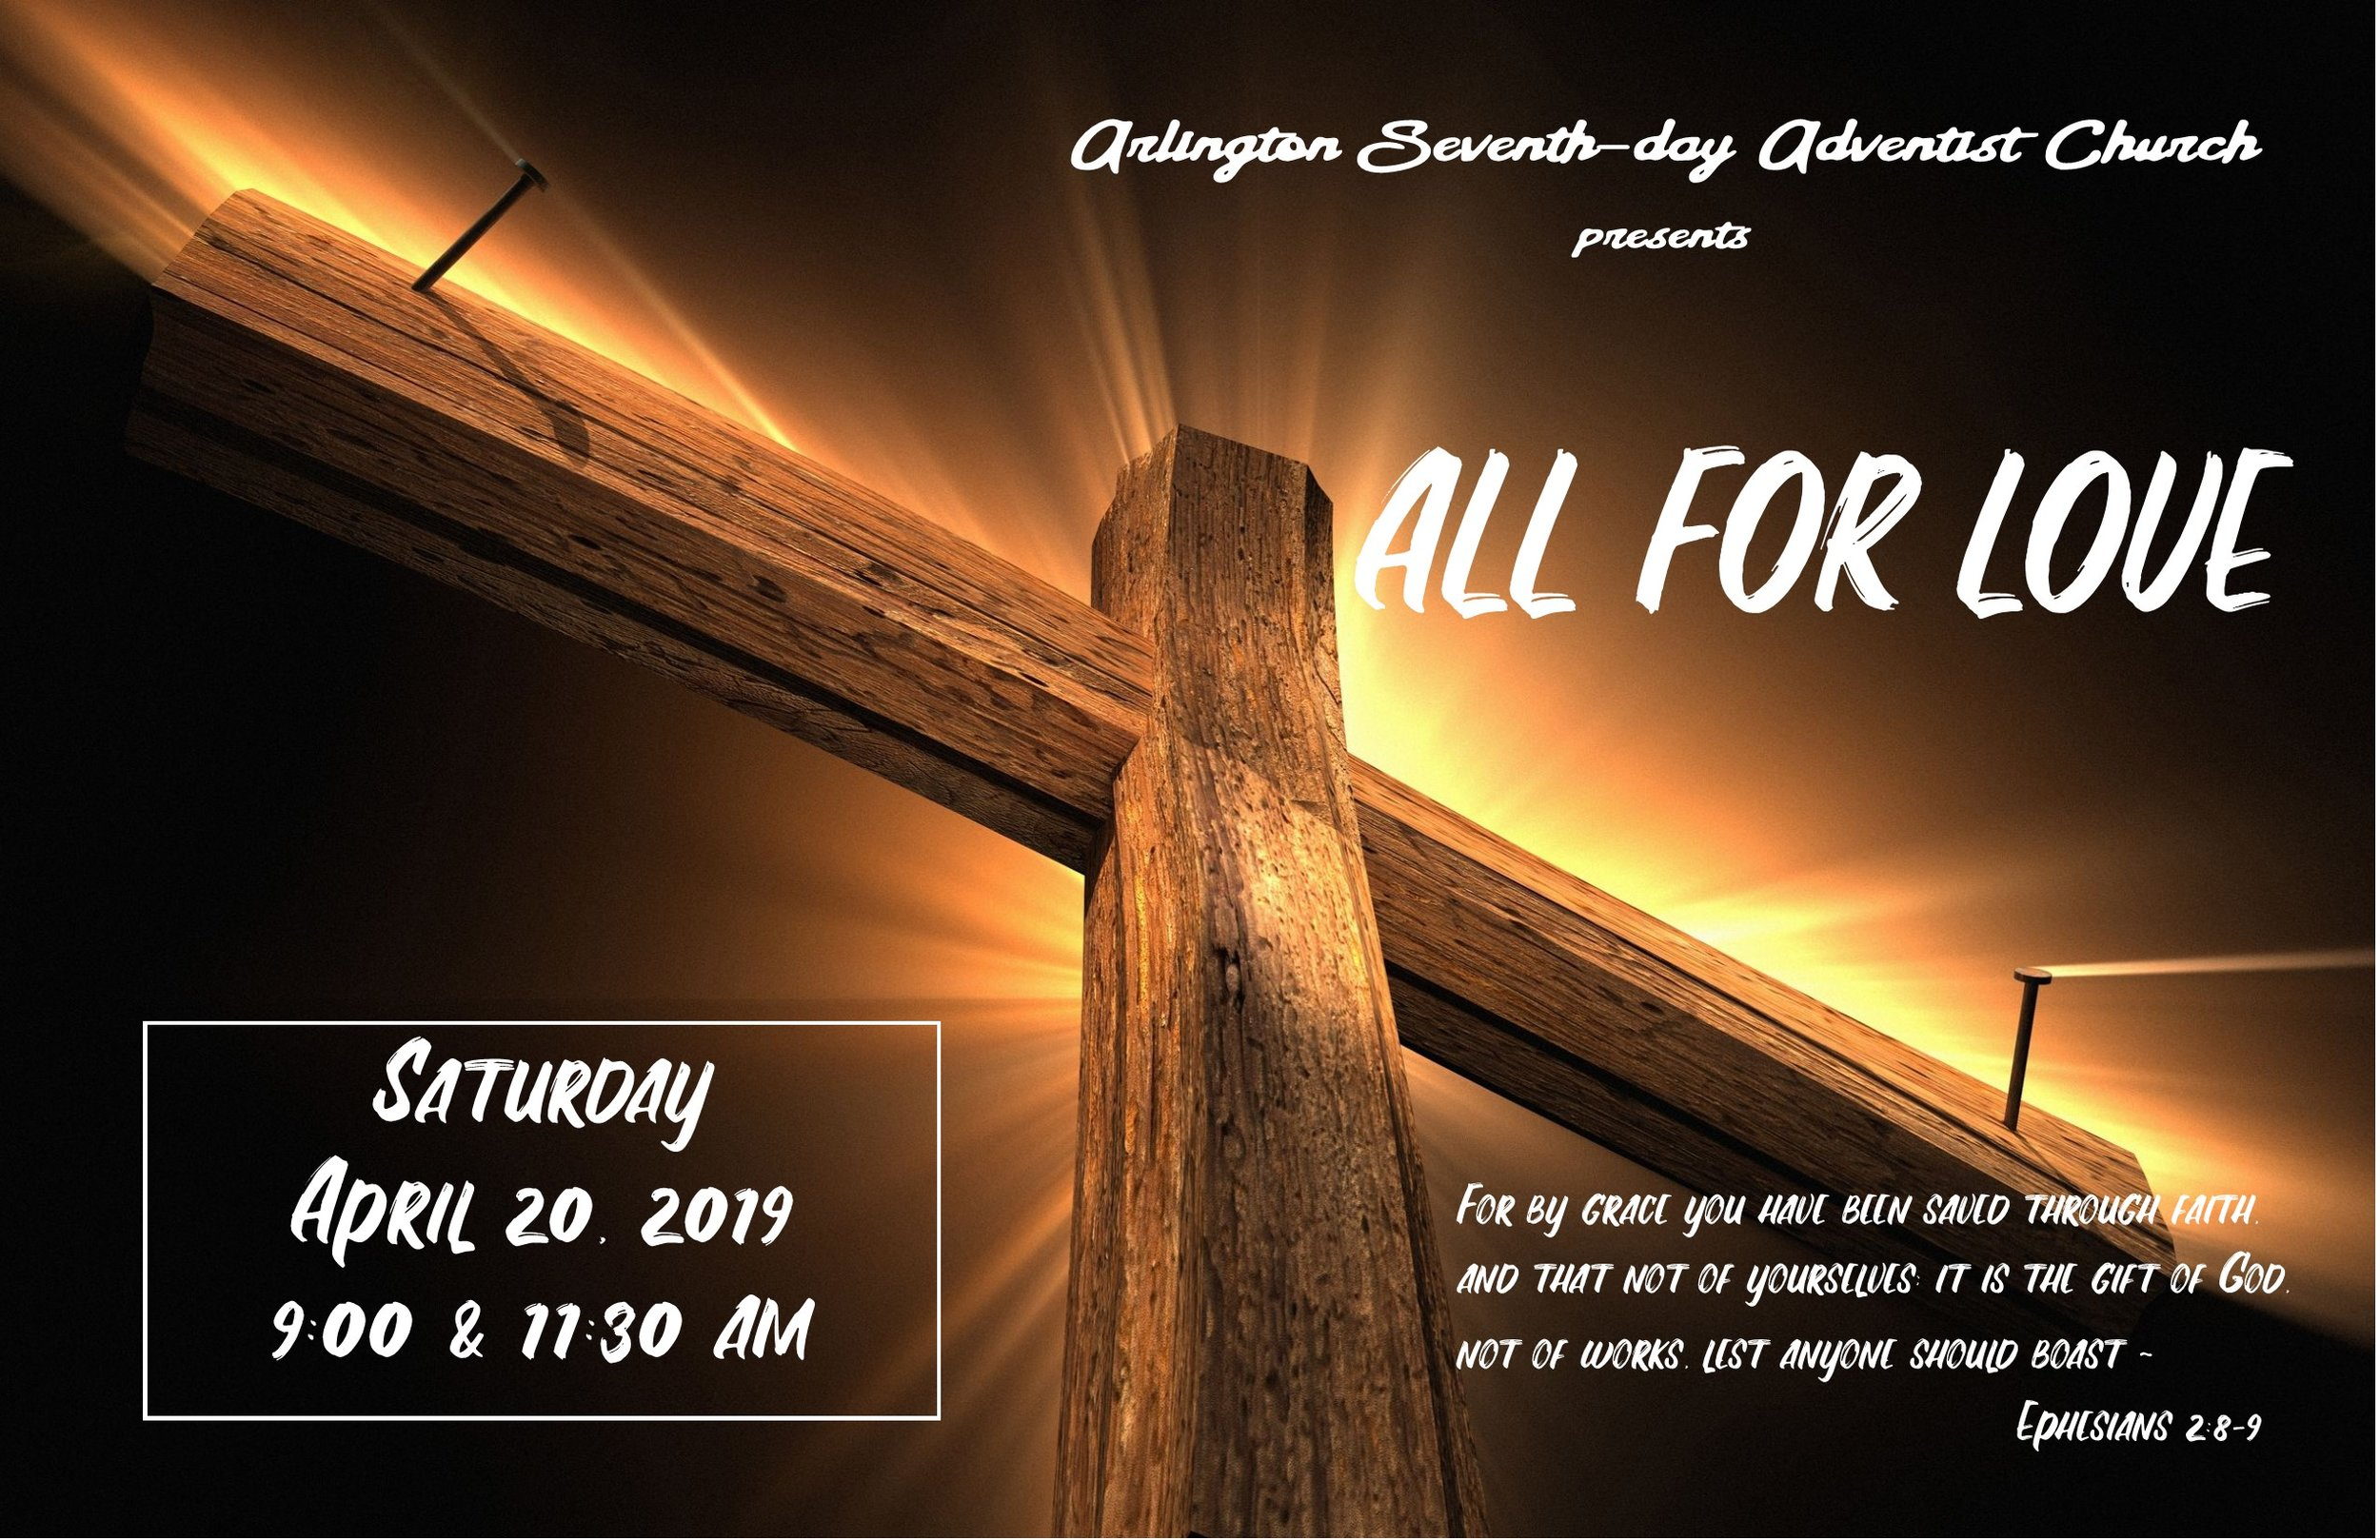 """ALL FOR LOVE   Arlington Seventh-day Adventist Church is delighted to present, """"All For Love,"""" a musically-based Easter program centered around God's plan of salvation through grace. Presentations will be Saturday April 20, 2019 @ 9:00am & 11:30am at 4409 Pleasantview Drive, Arlington, TX 76017. Free and open to the community, all are invited to attend. For more information call 817-483-4837."""